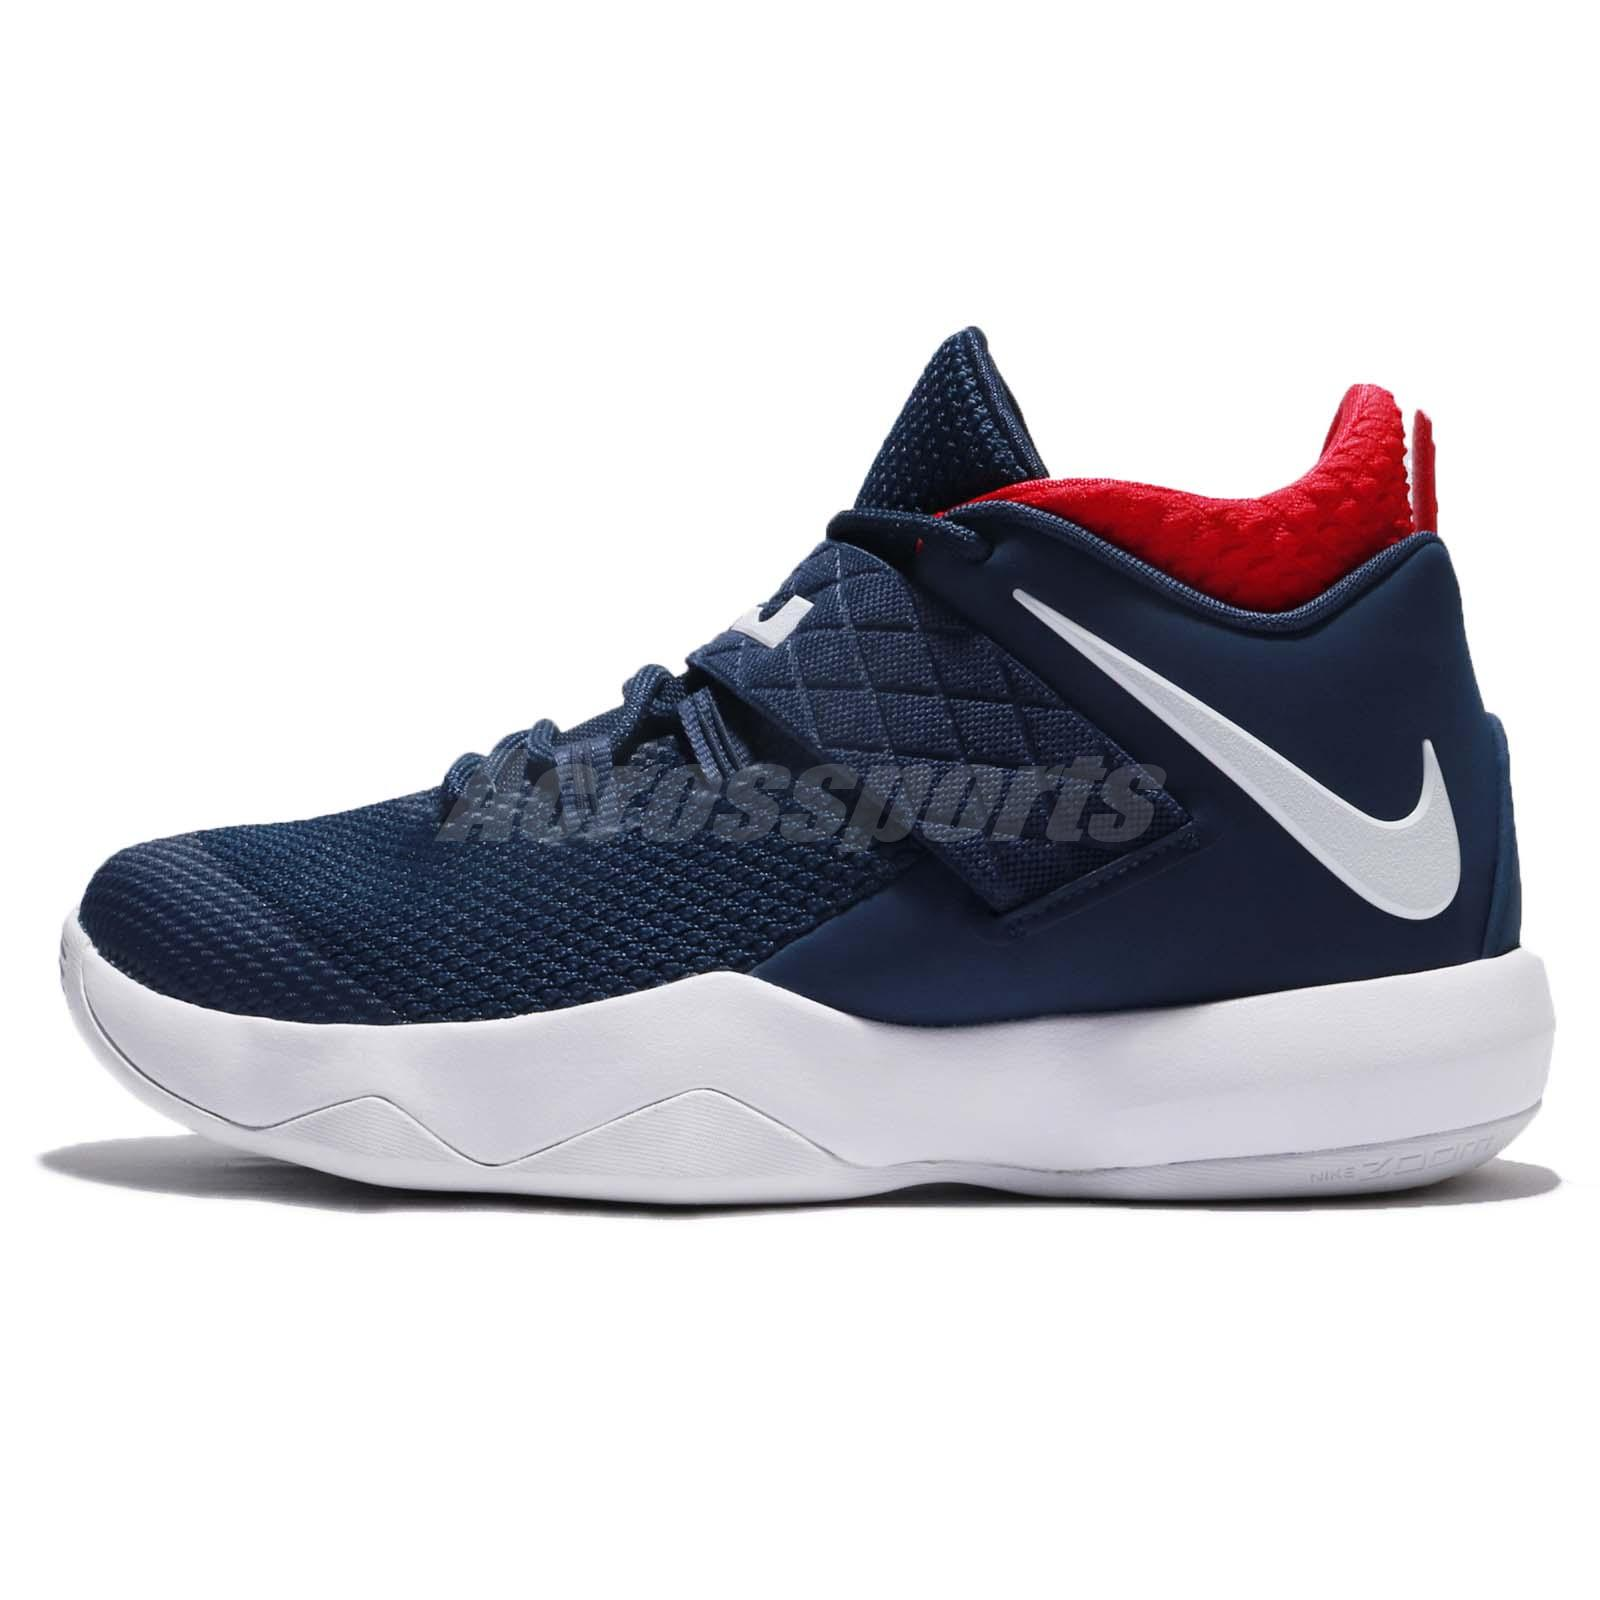 Any Nike Shoes Made In Usa